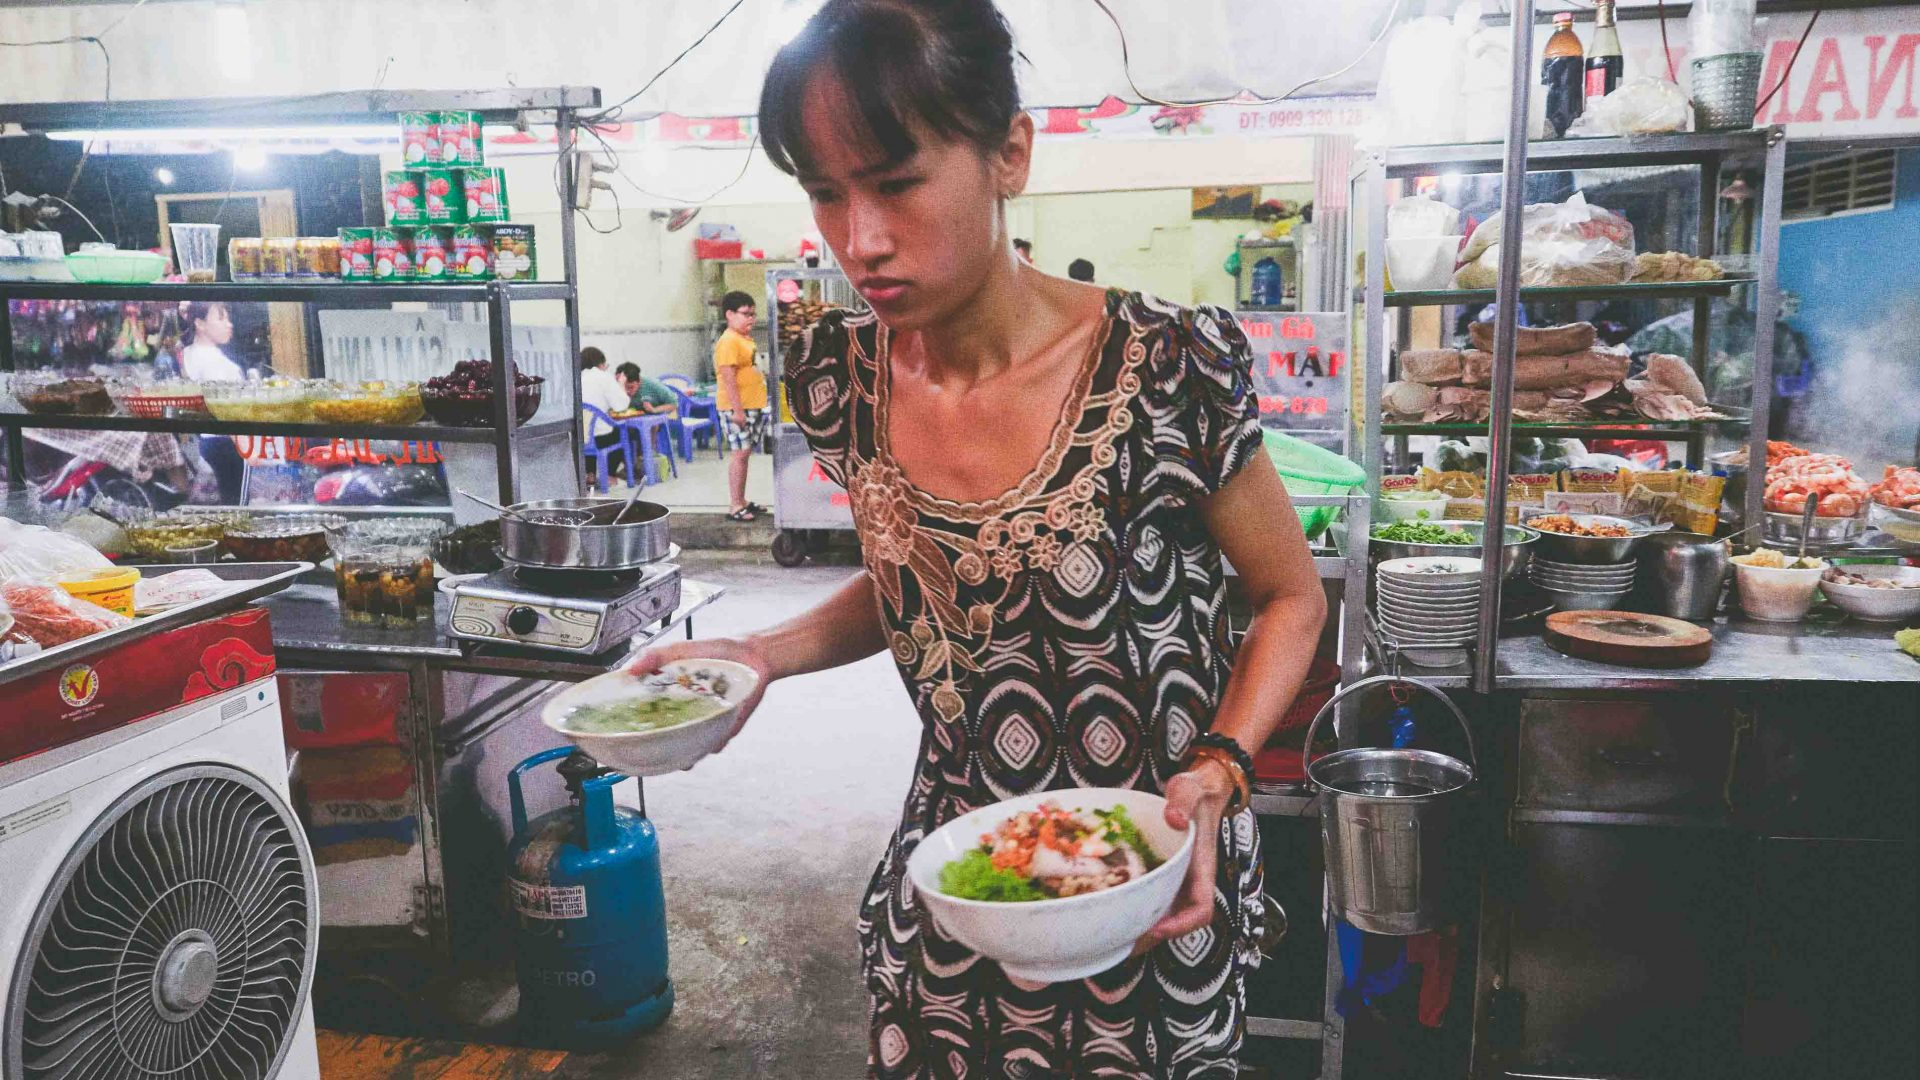 Ho Chi Minh street food: Food is taken out to tables at Vo Thi Ngoc Nhung's food cart, Amen.